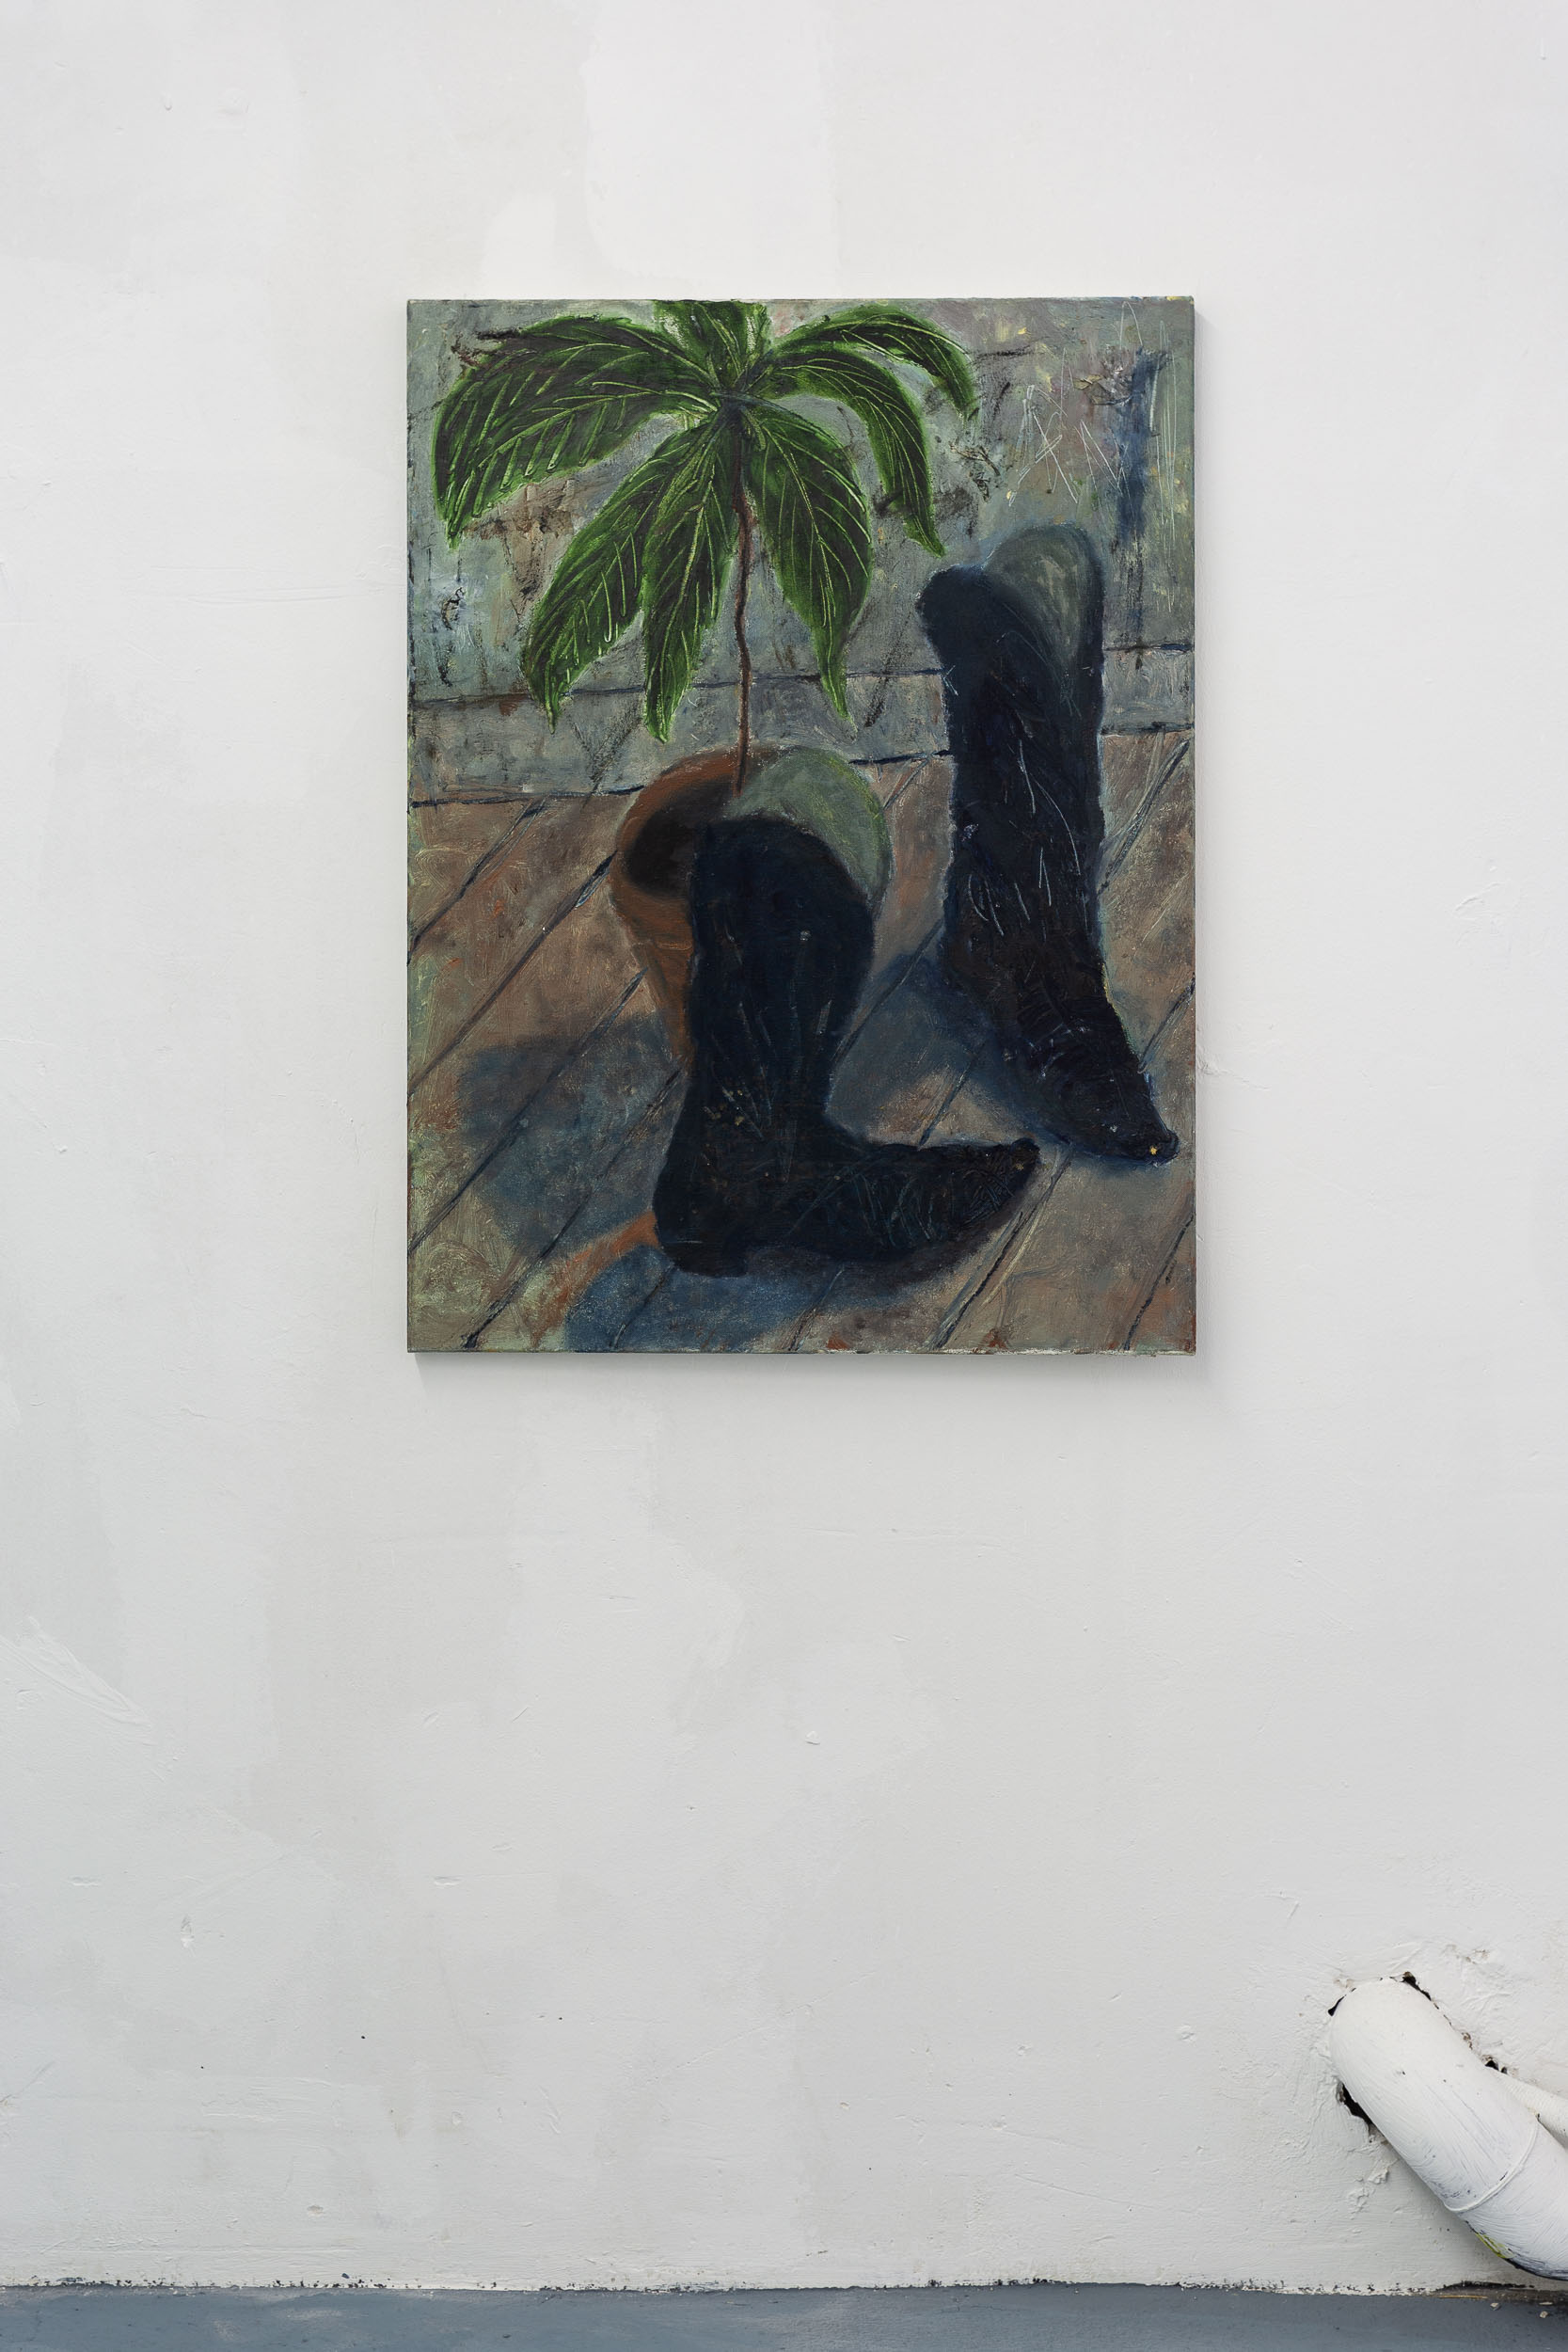 Dieter Hall,  My avocado, my boots,  1989, Oil on canvas, 80 x 60 cm  Photo: Kilian Bannwart